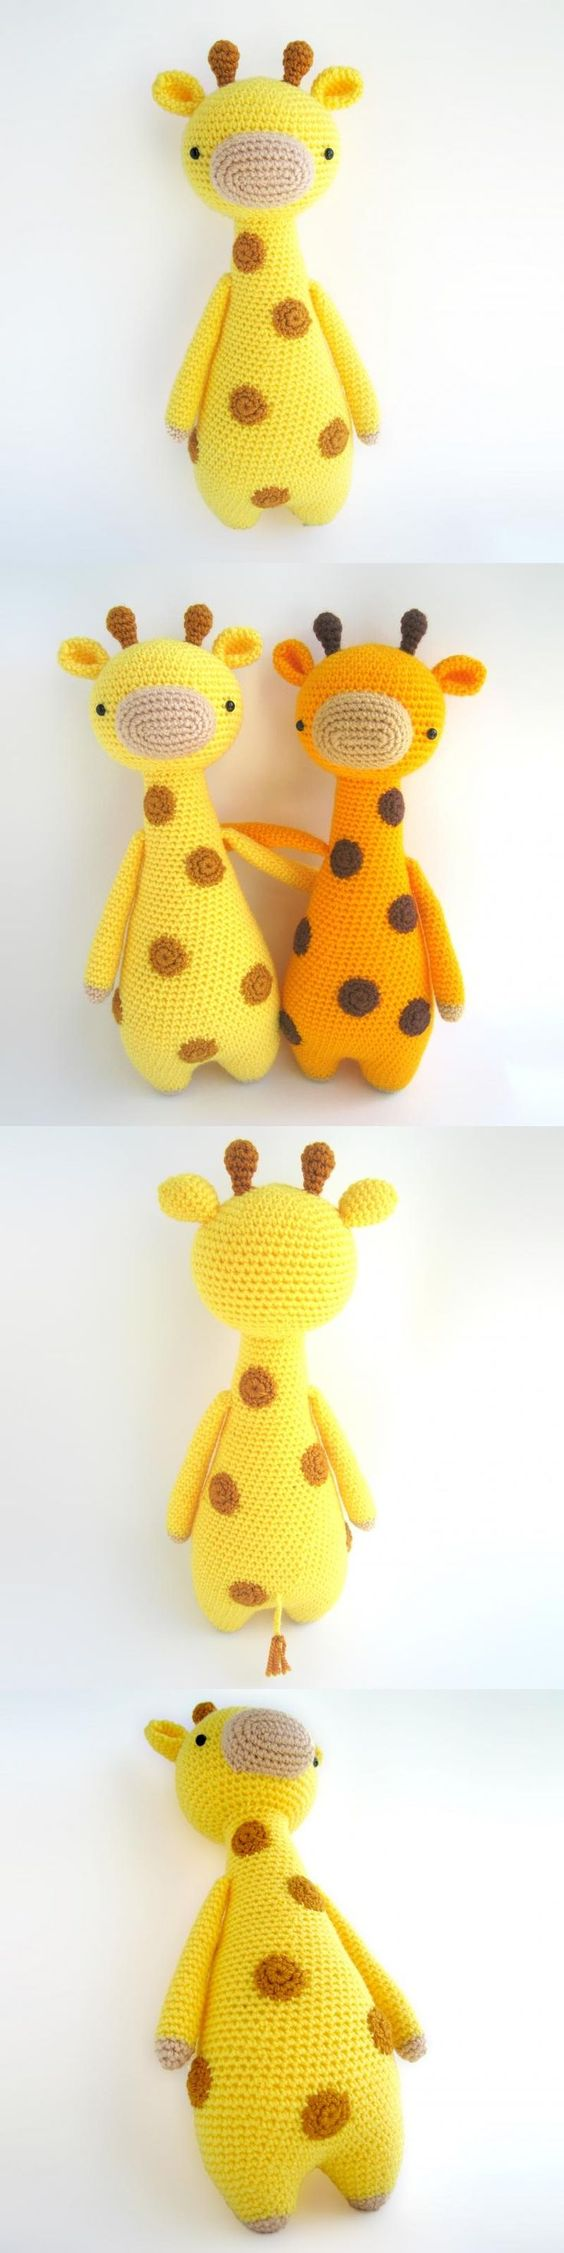 Amigurumi Hello Kitty Collection 1 : Tall giraffe with spots amigurumi pattern by Little Bear ...